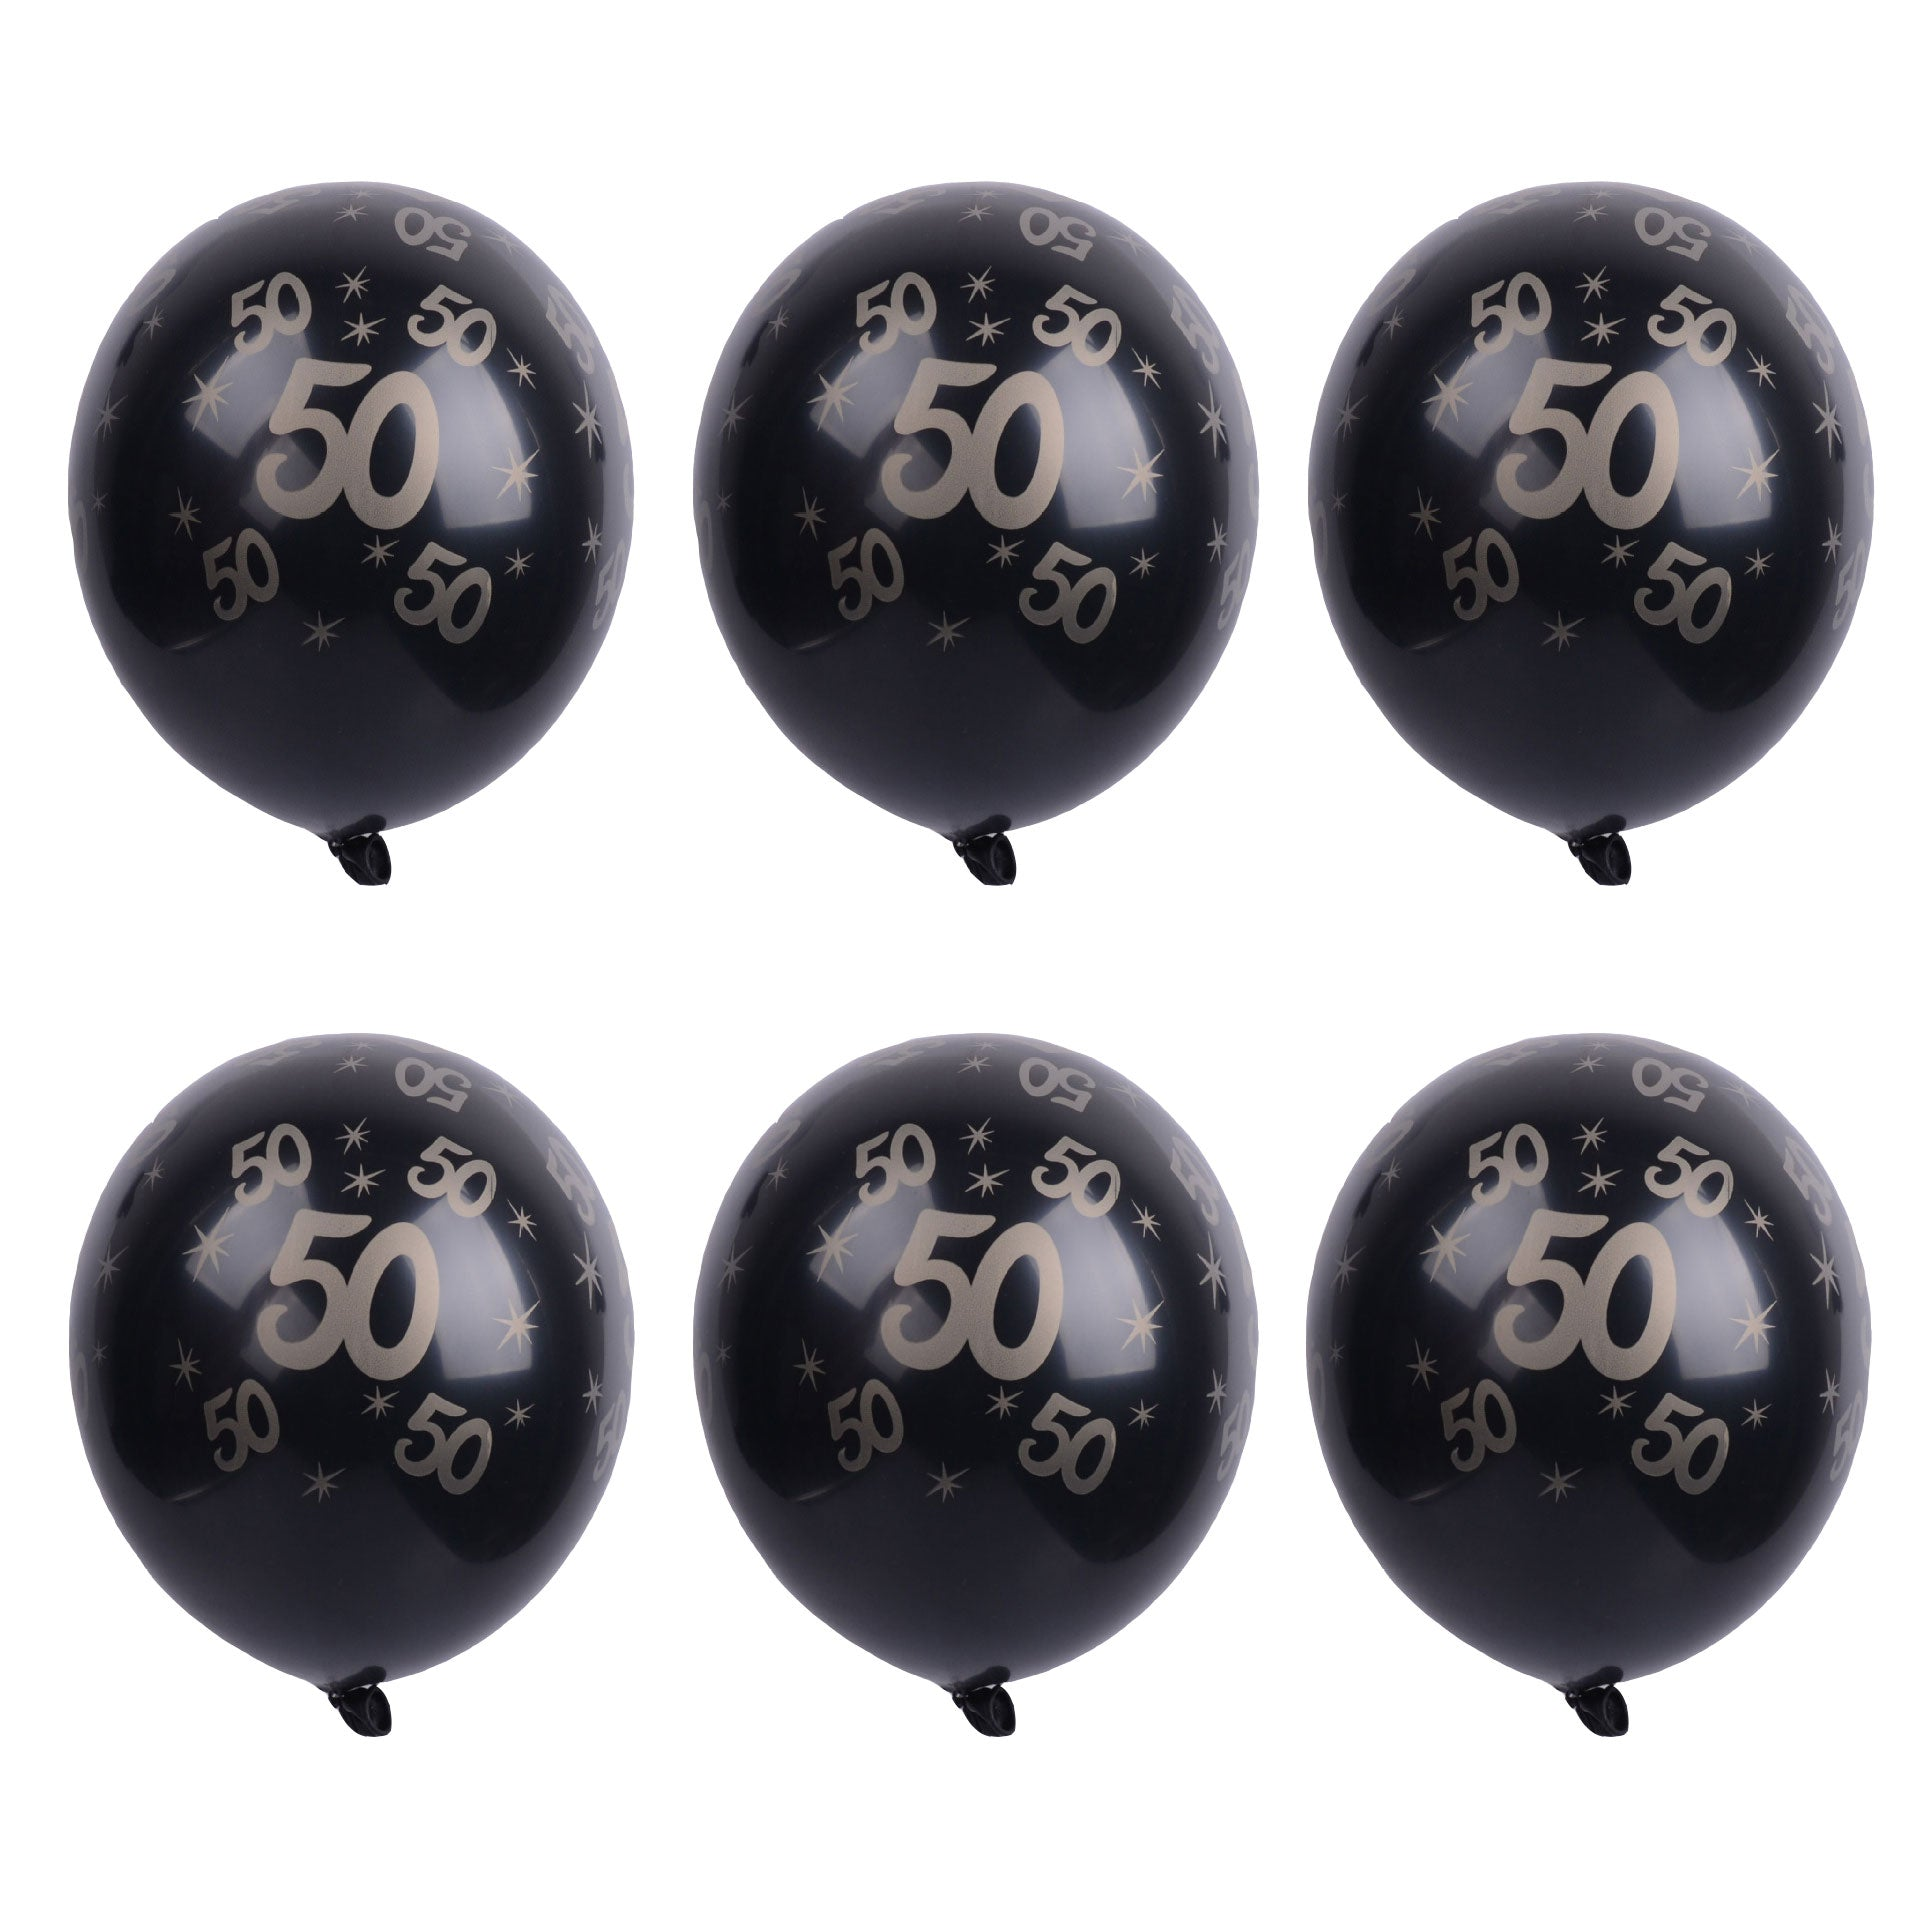 30/50th Birthday Decorations Printed Latex Balloons-50Pcs Free Shipping - Sunbeauty